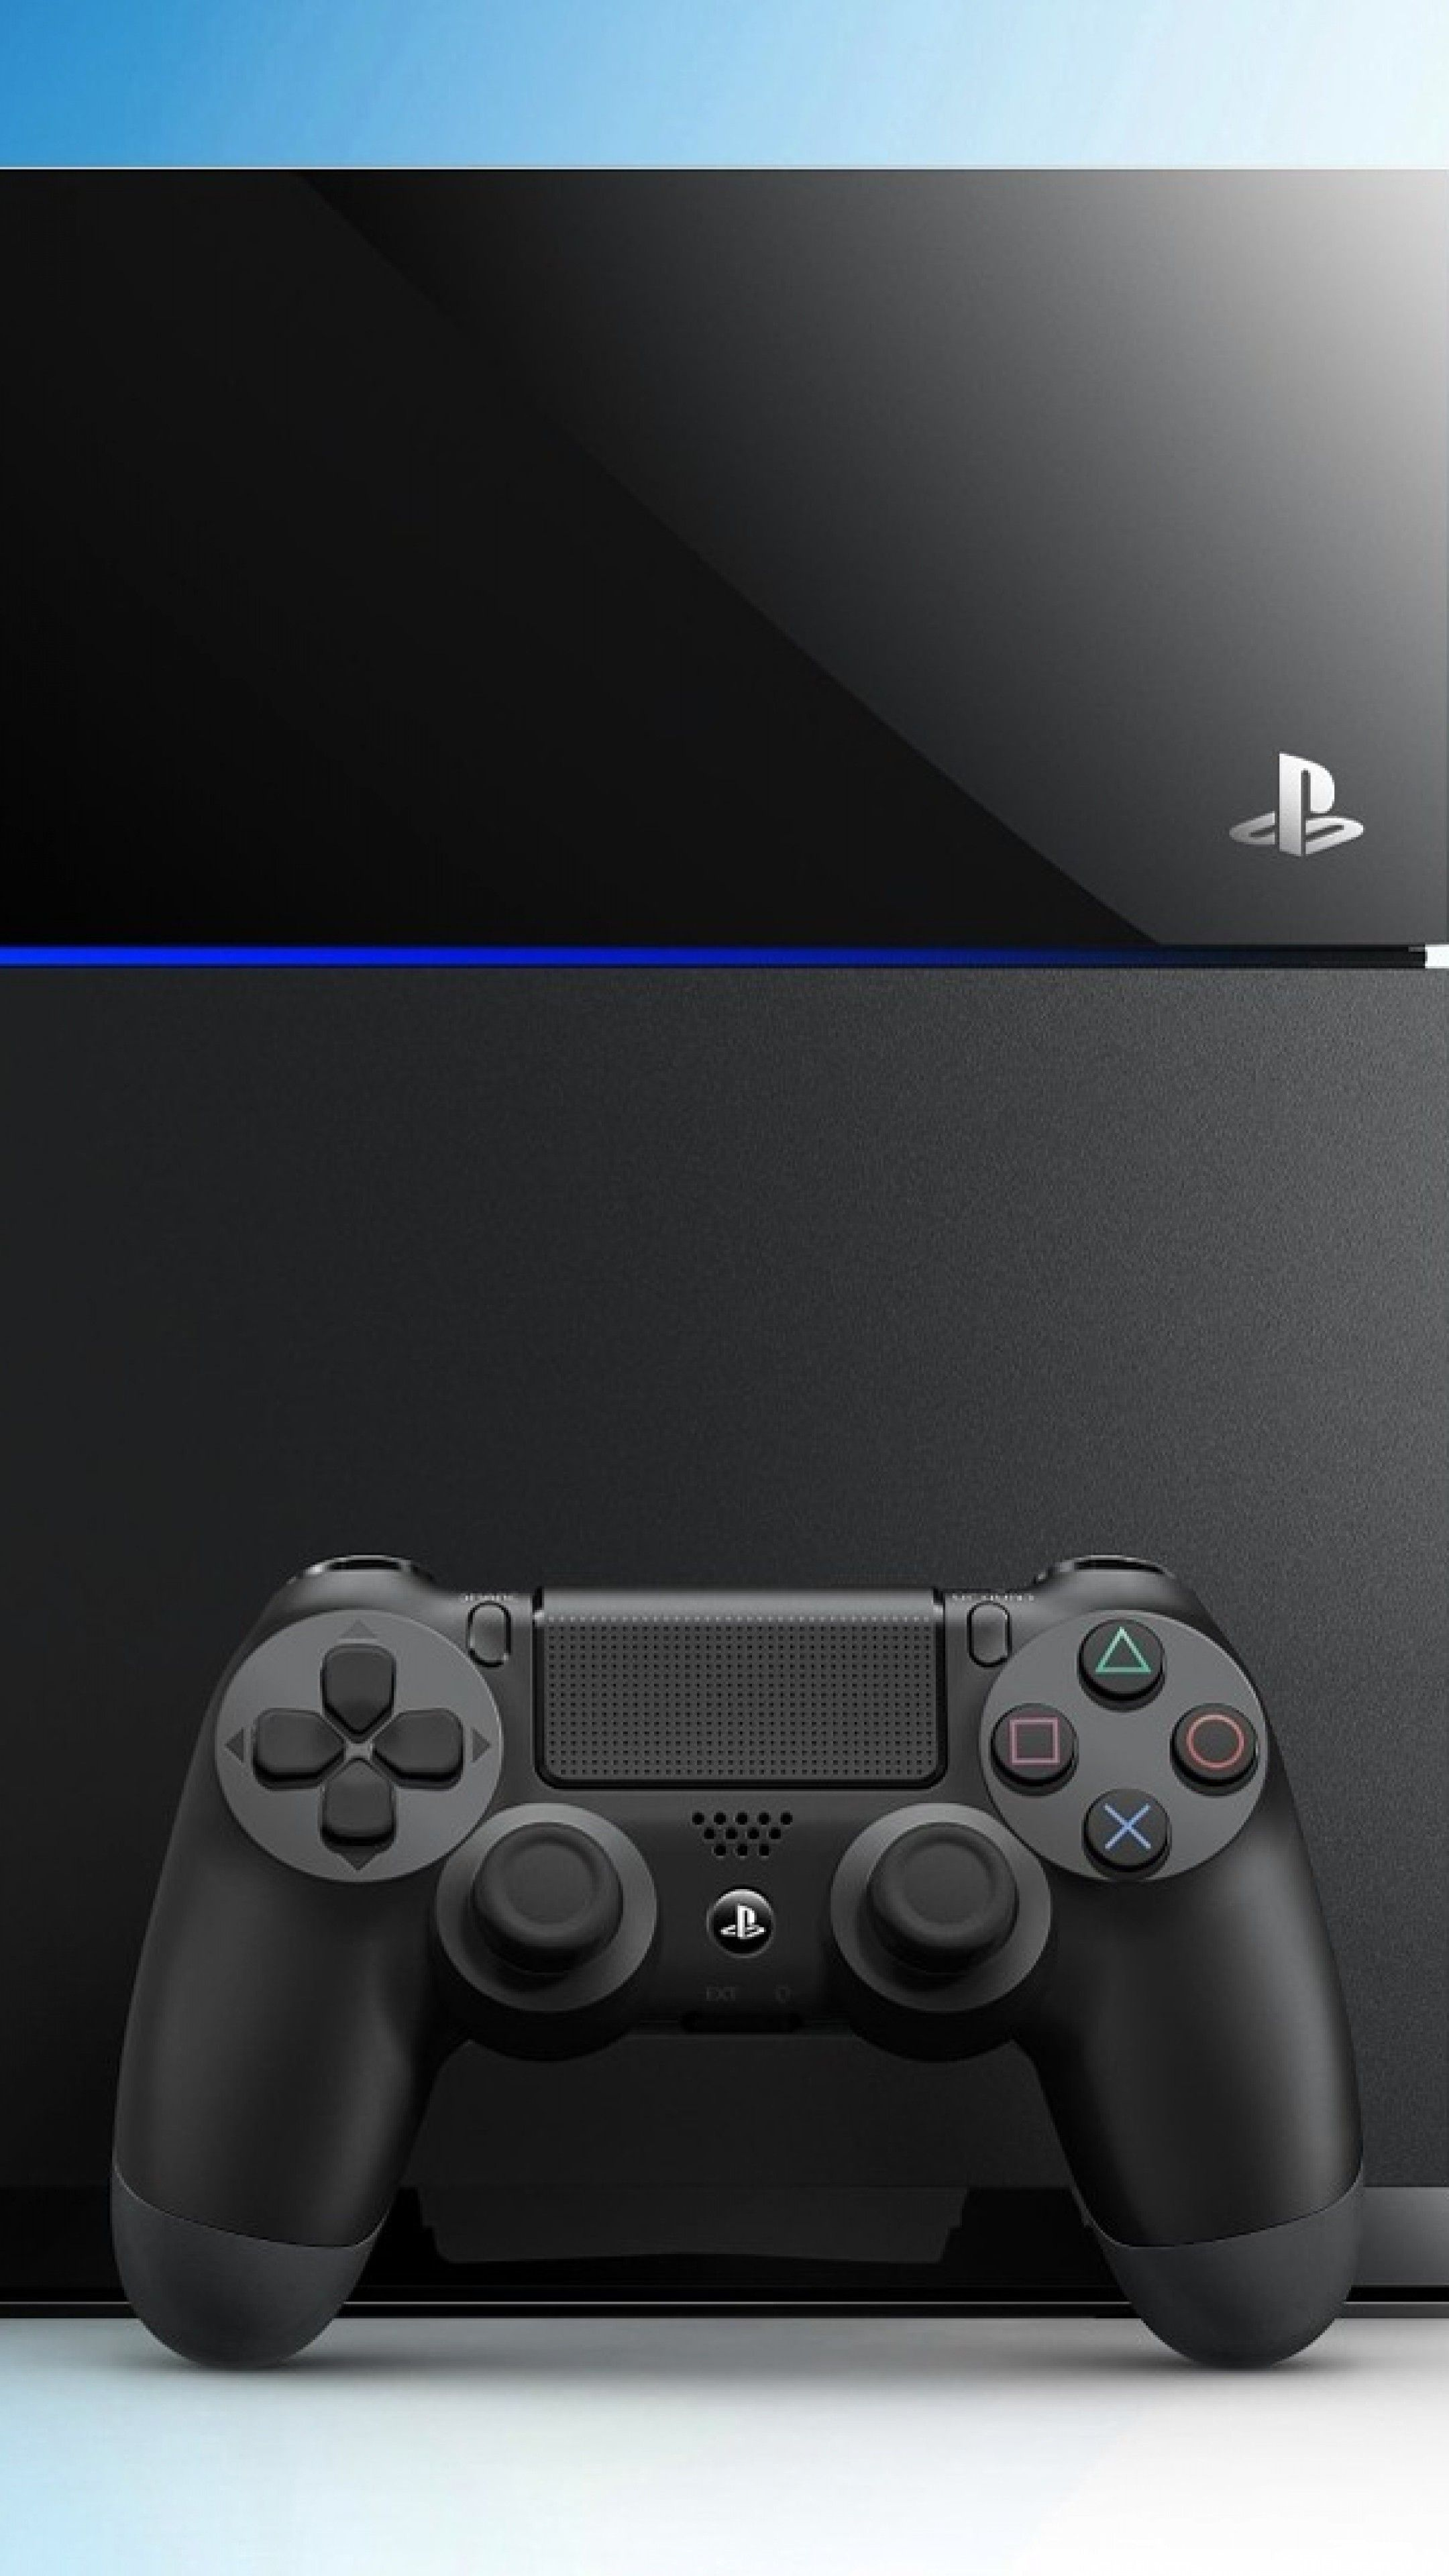 Playstation 4 Wallpaper HD (76+ images) in 2020